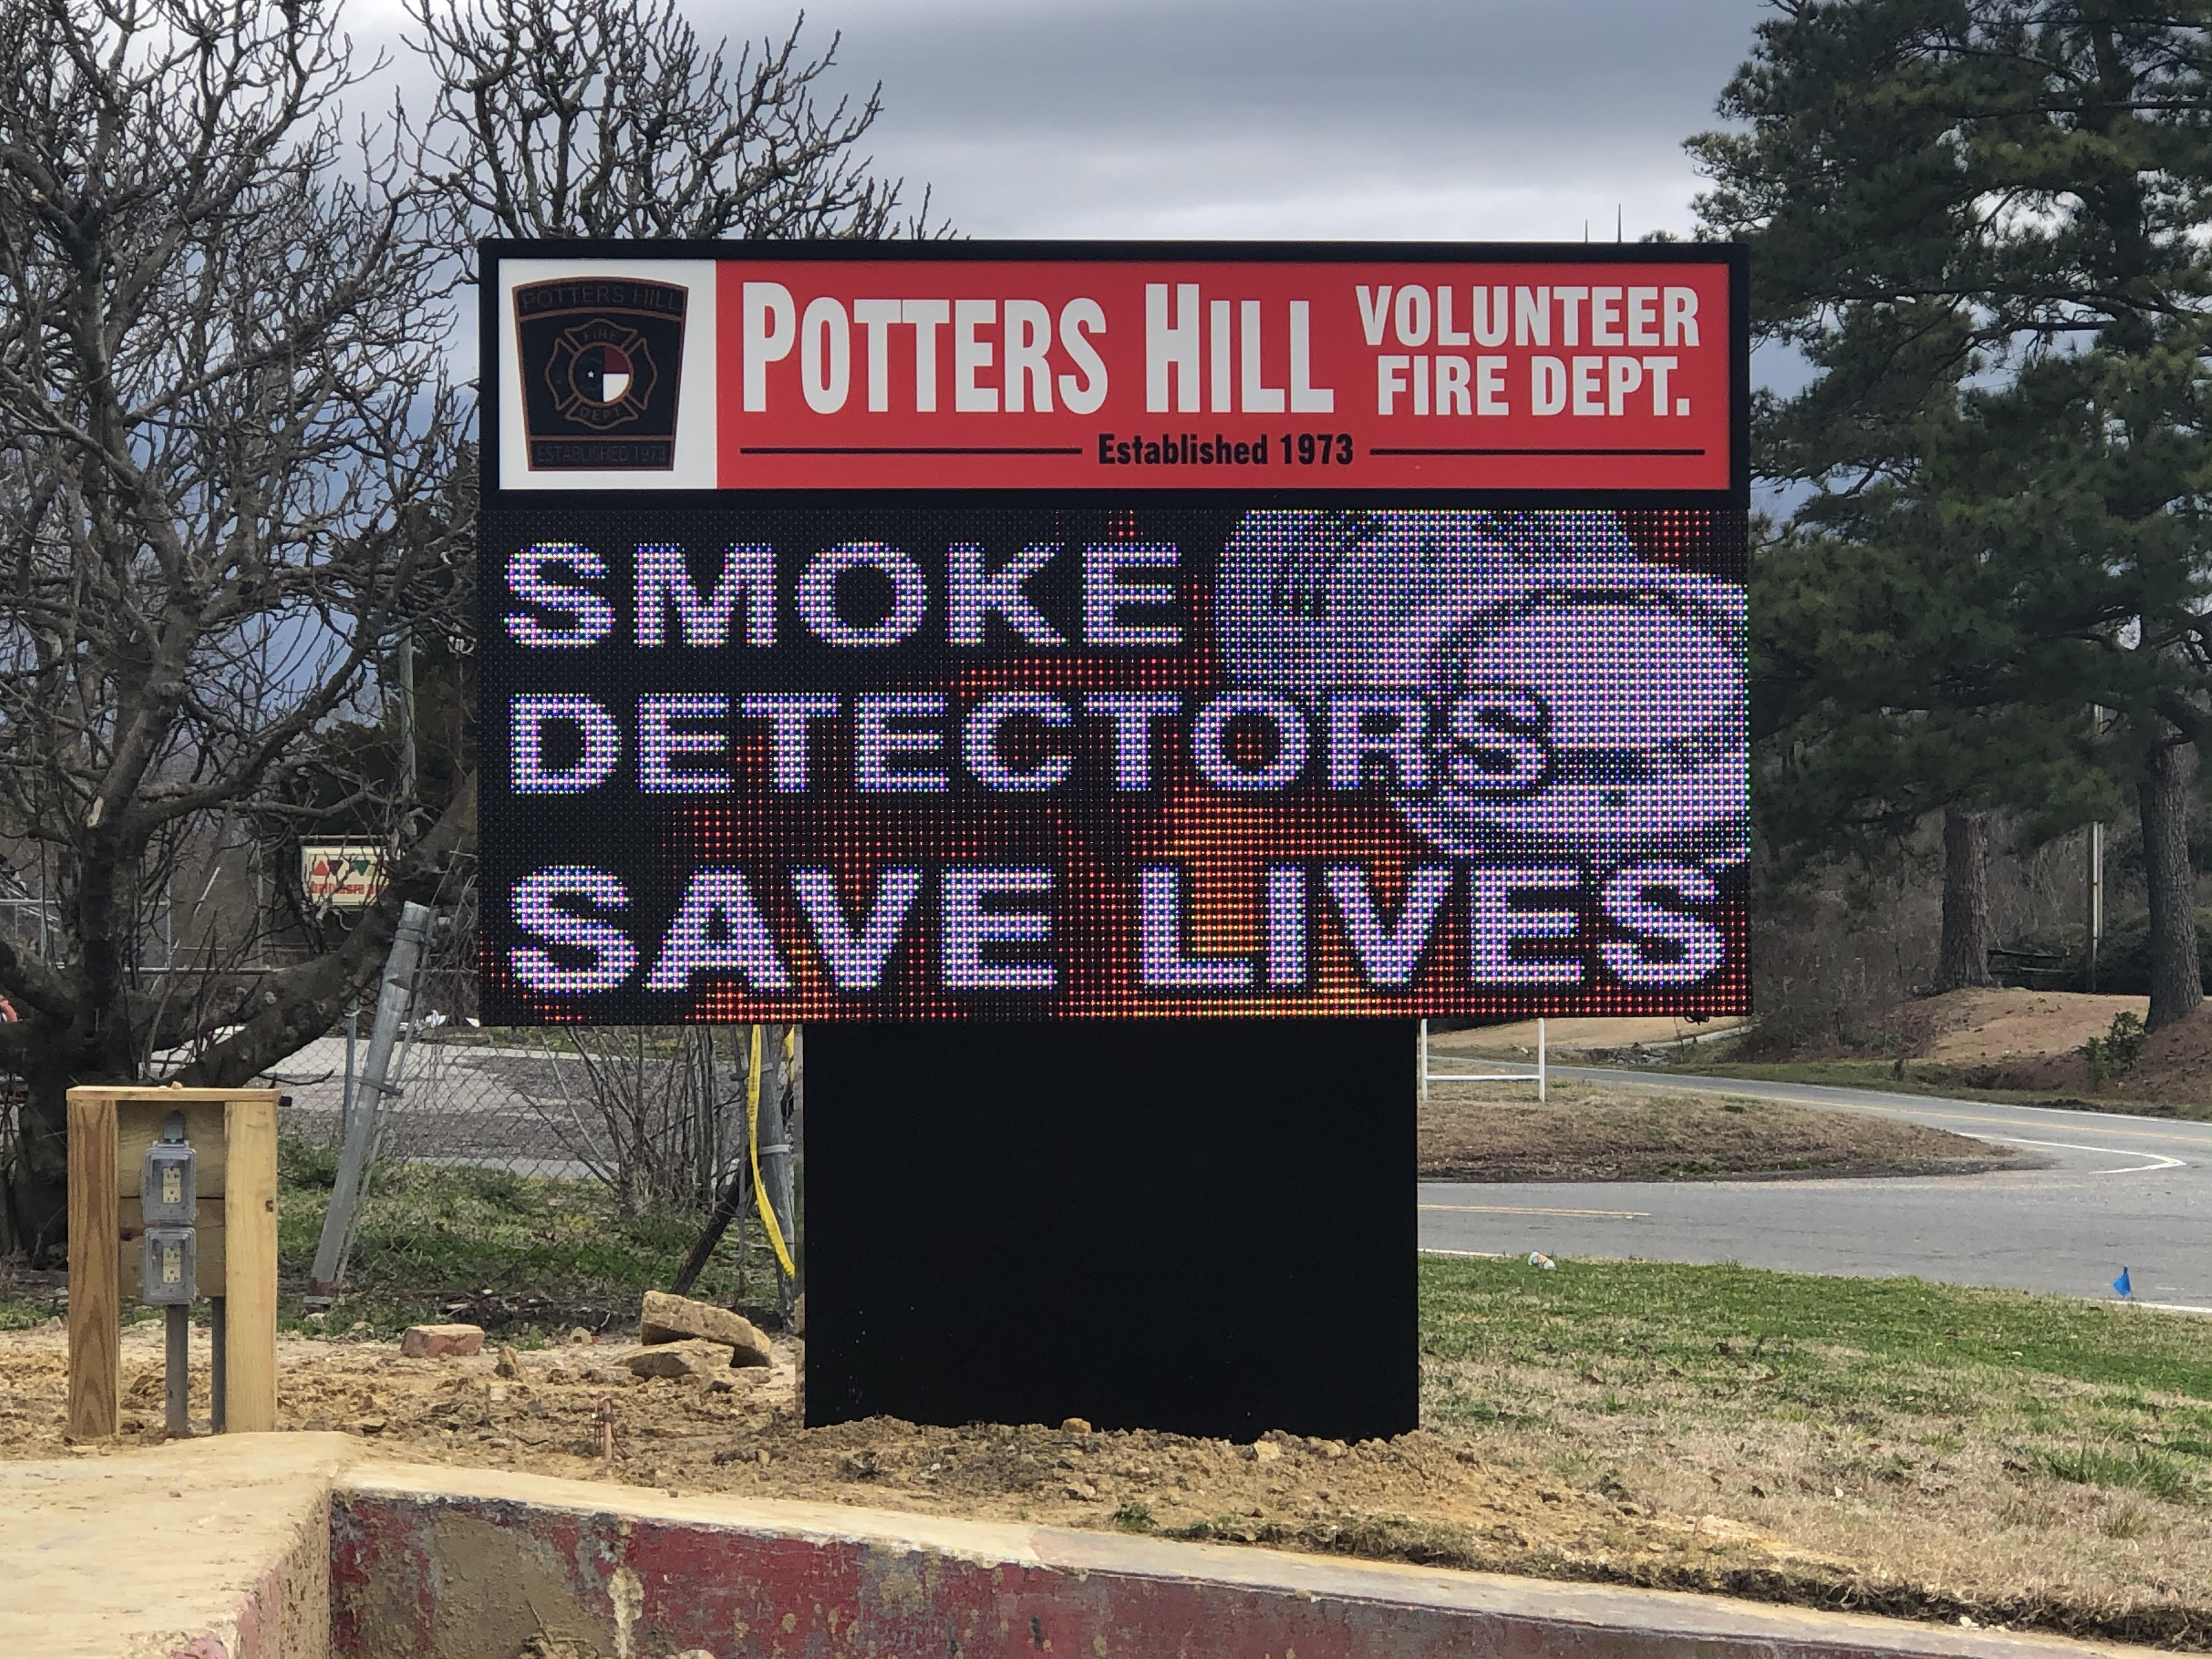 Potters Hill Fire Department